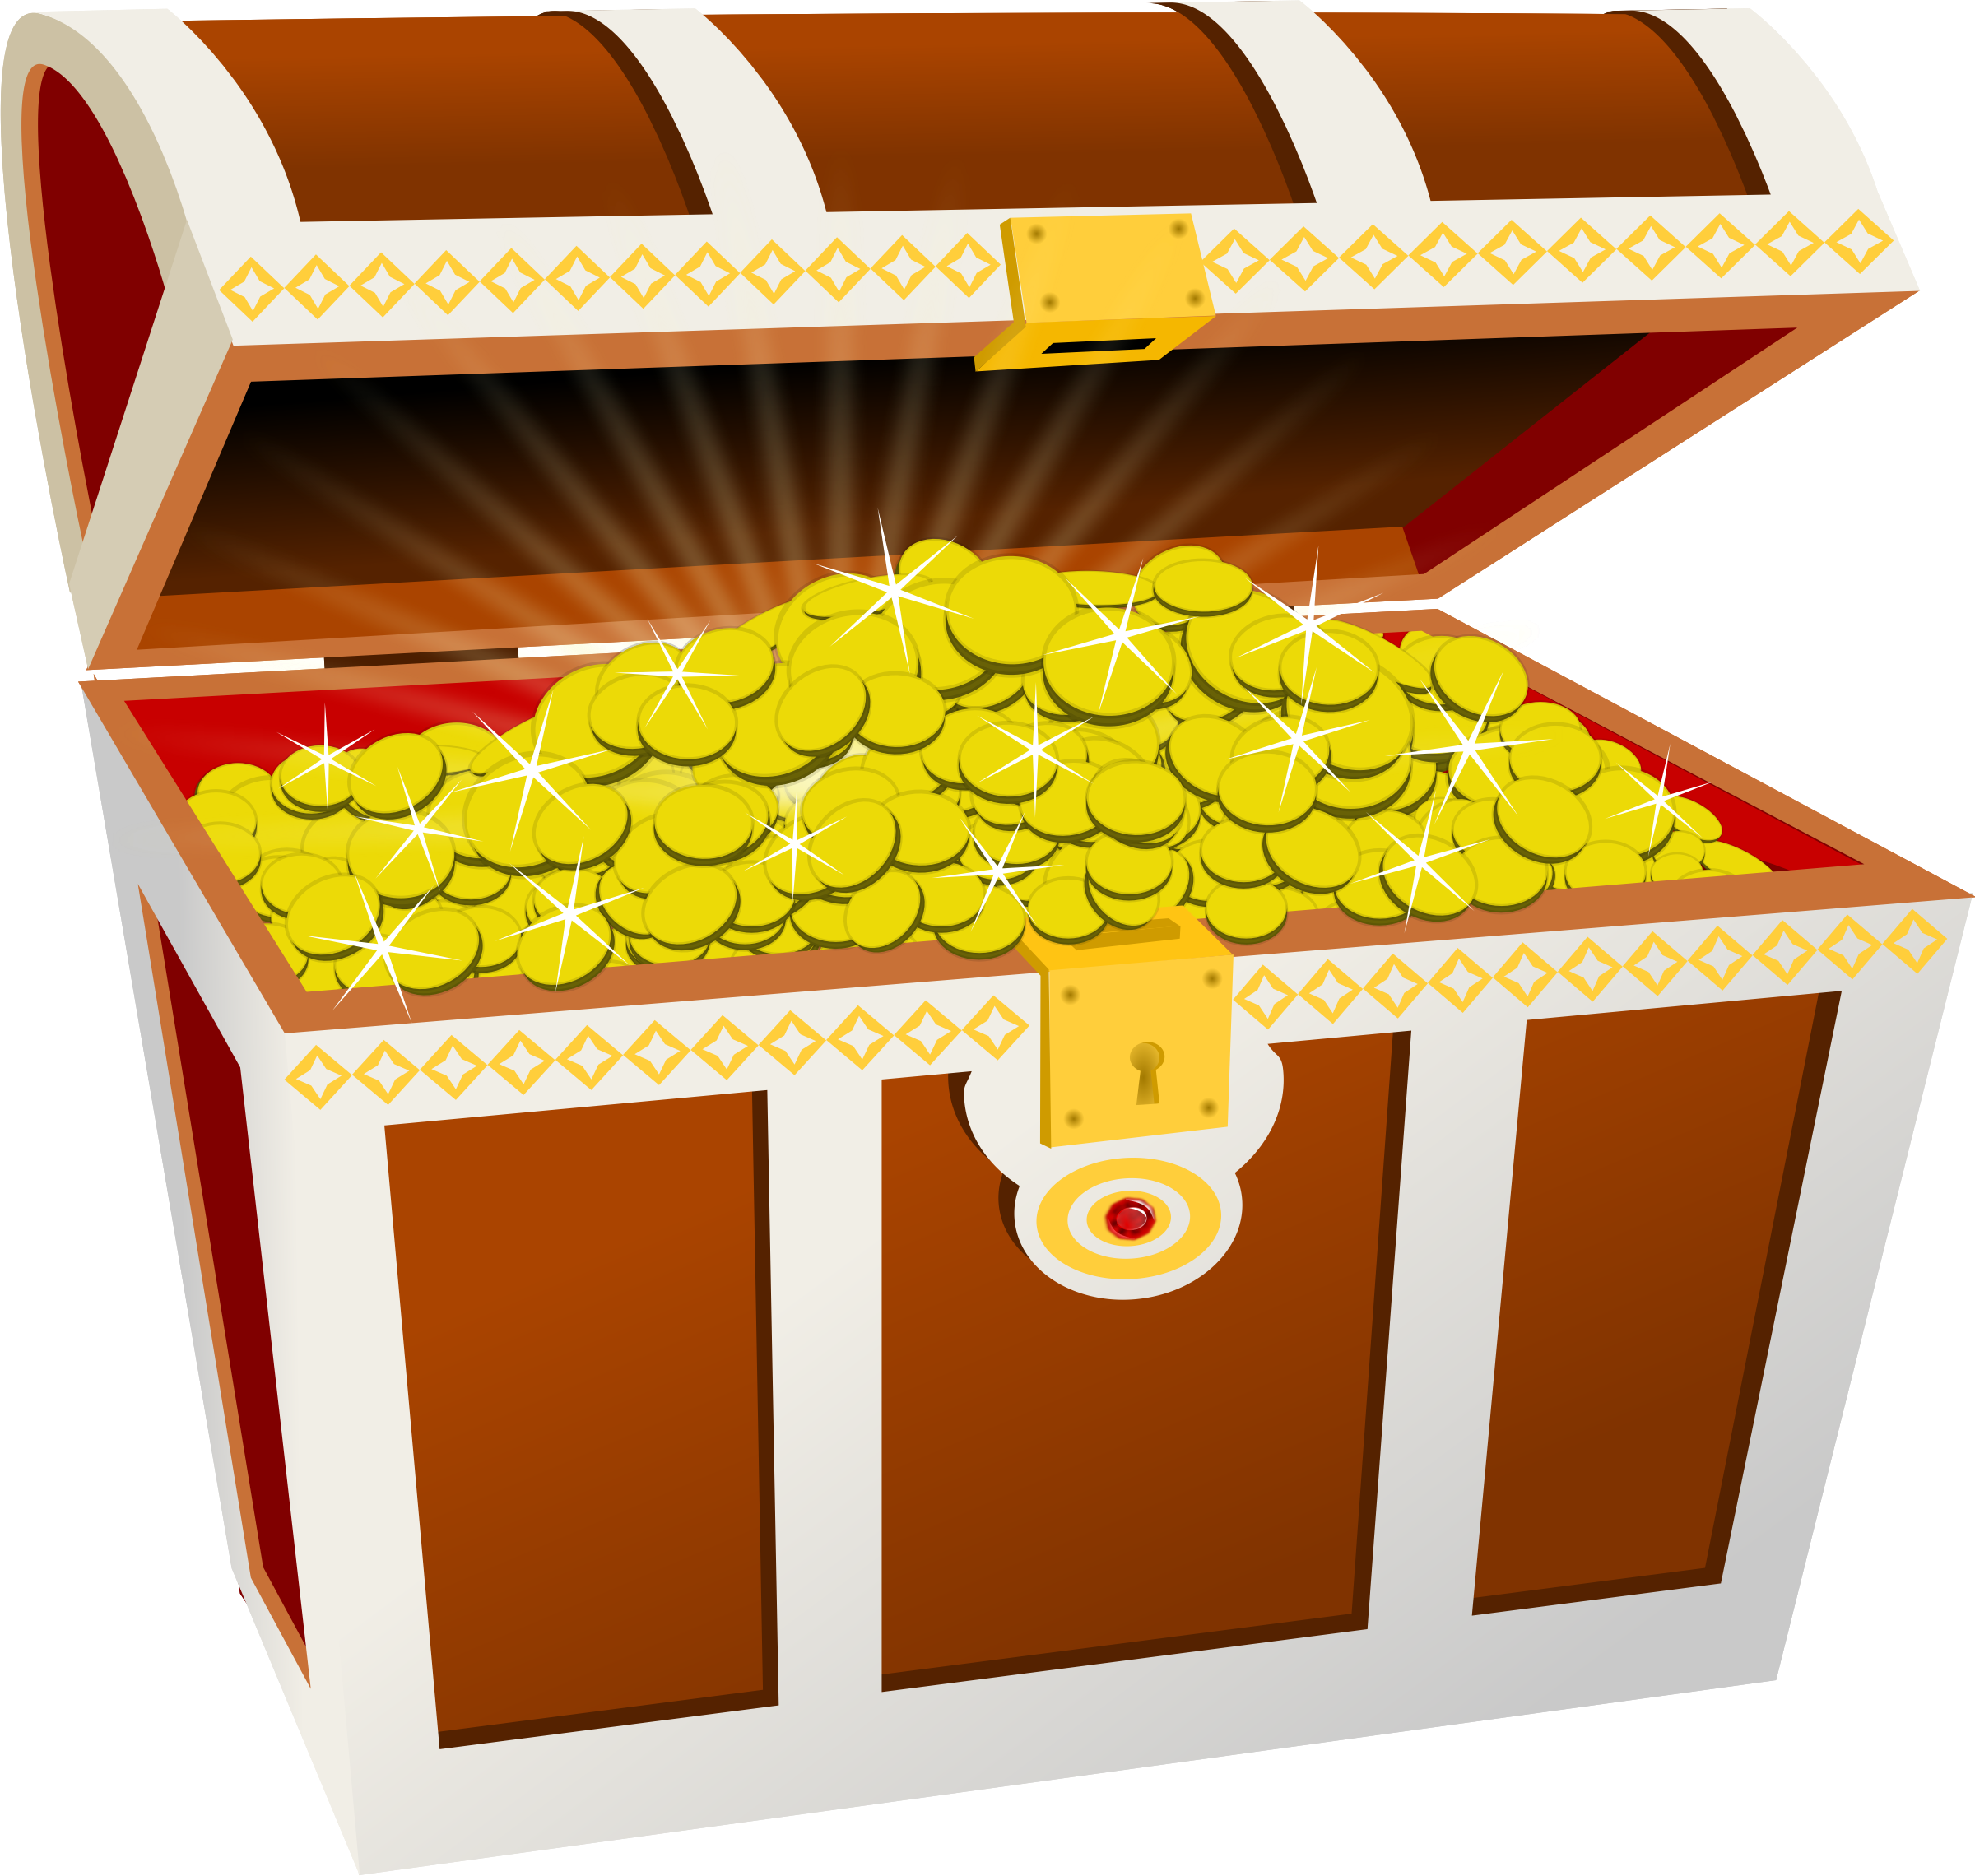 Treasure clipart big. Chest image png